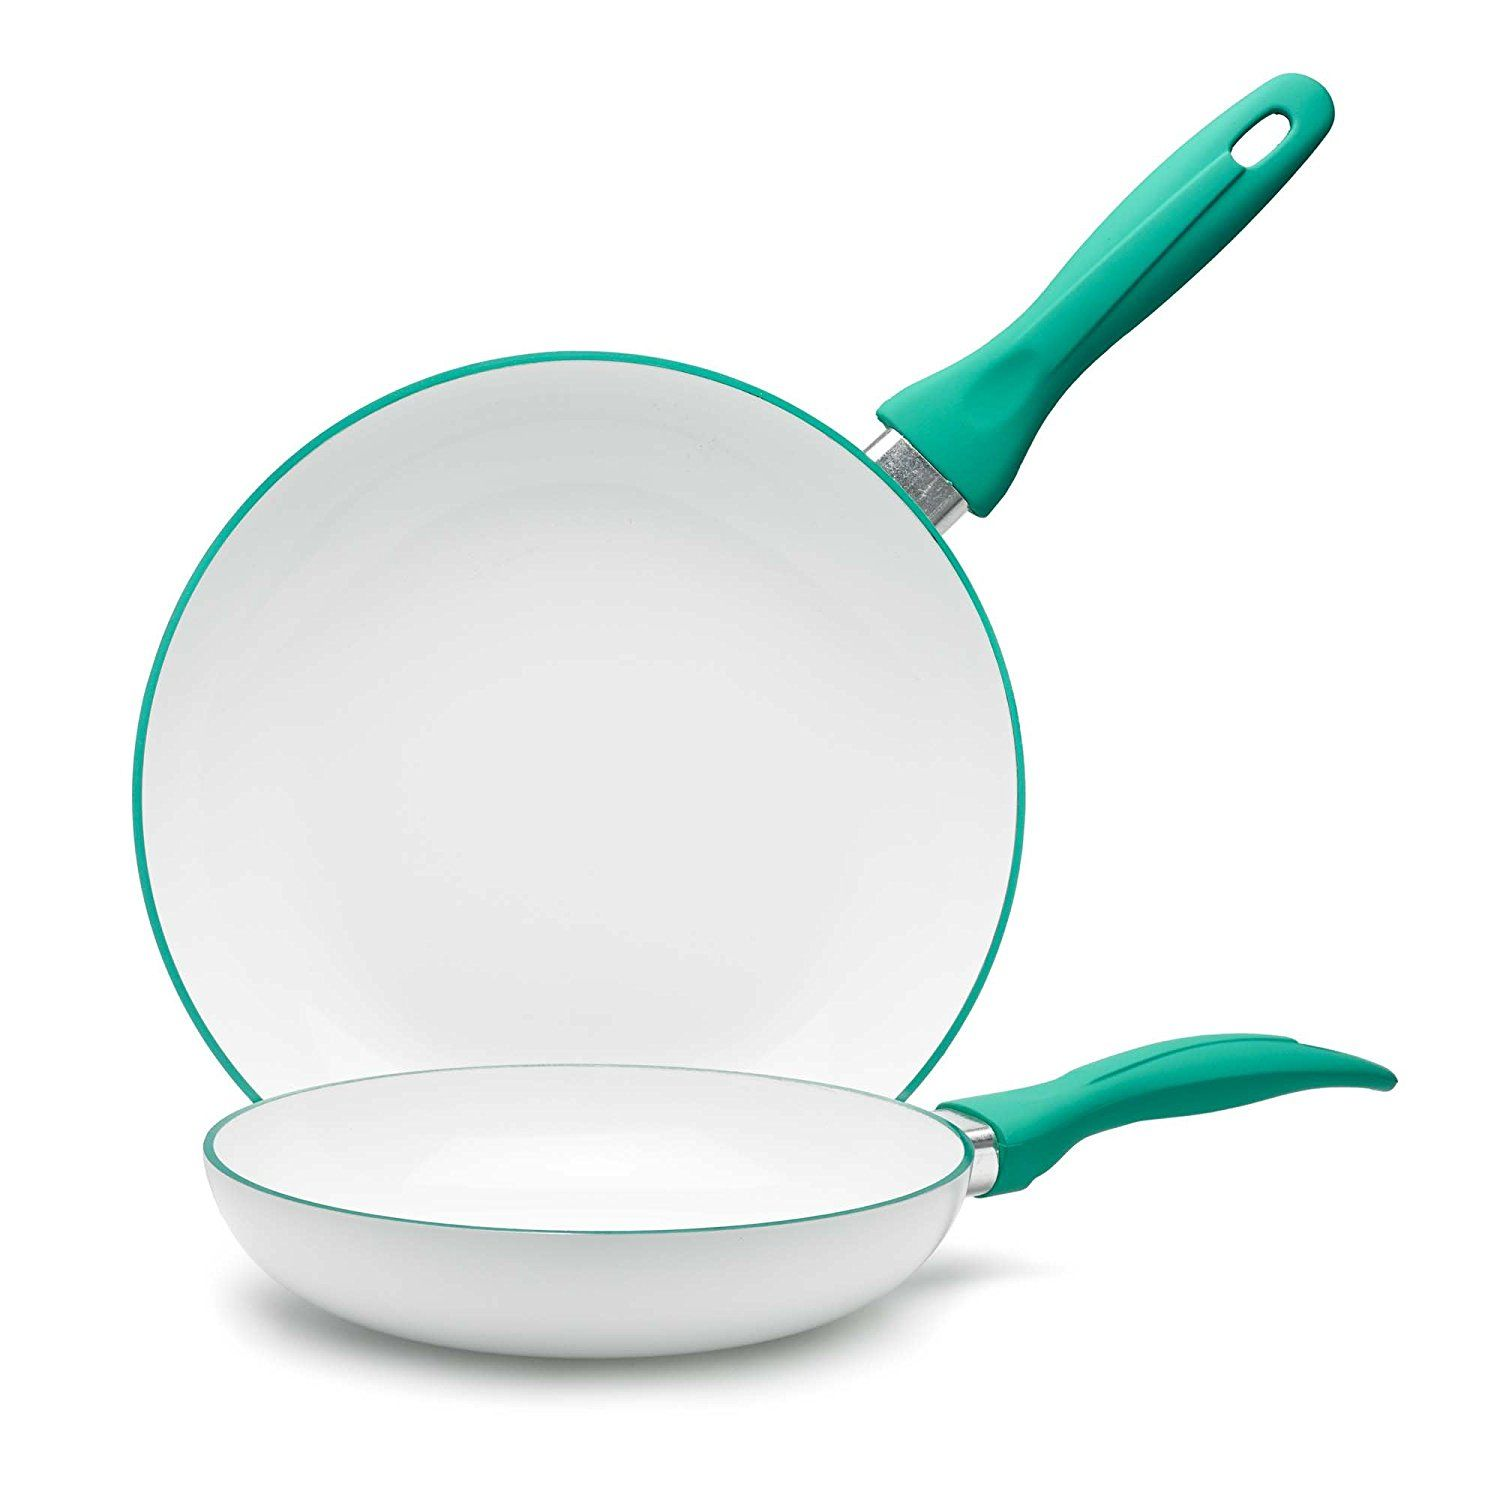 Iko Accent Ceramic Non Stick Pan With Cera2 Dual Layer Ceramic Non Stick Coating 10 Inch Green Be Sure To Ch Ceramic Non Stick Cookware Sets Non Stick Pan